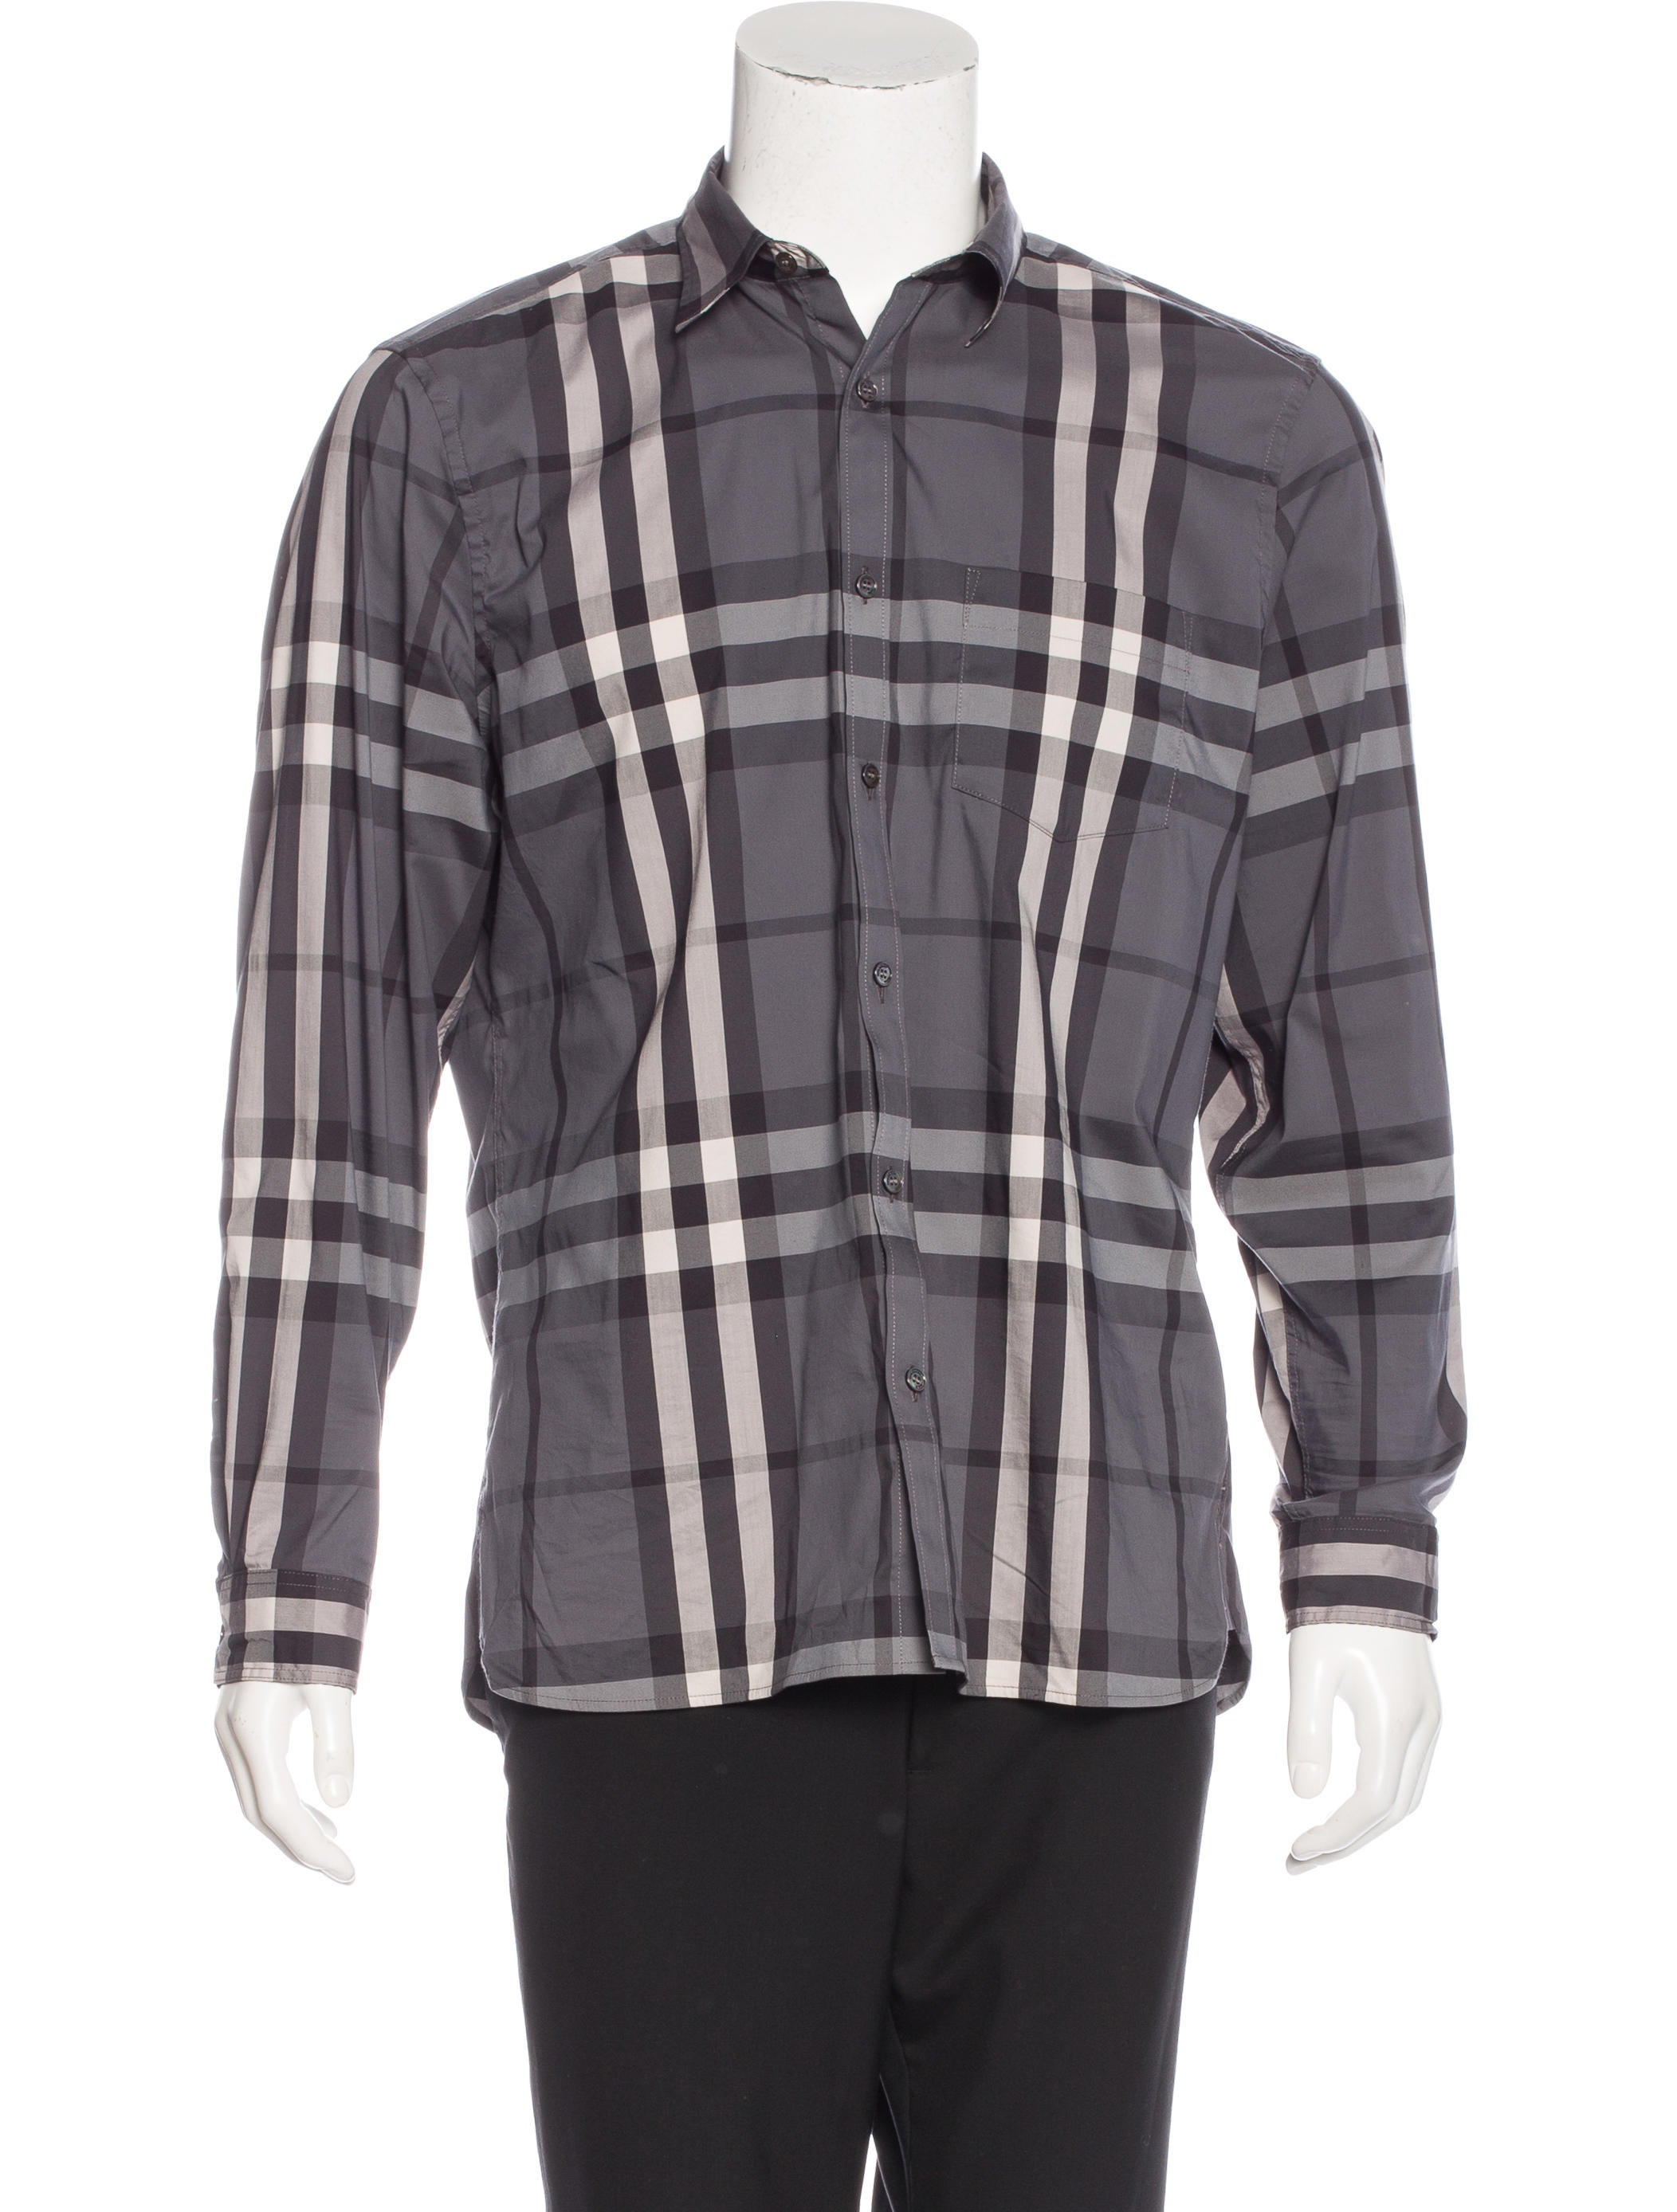 Burberry brit plaid woven shirt clothing bbr27133 for Burberry brit plaid shirt